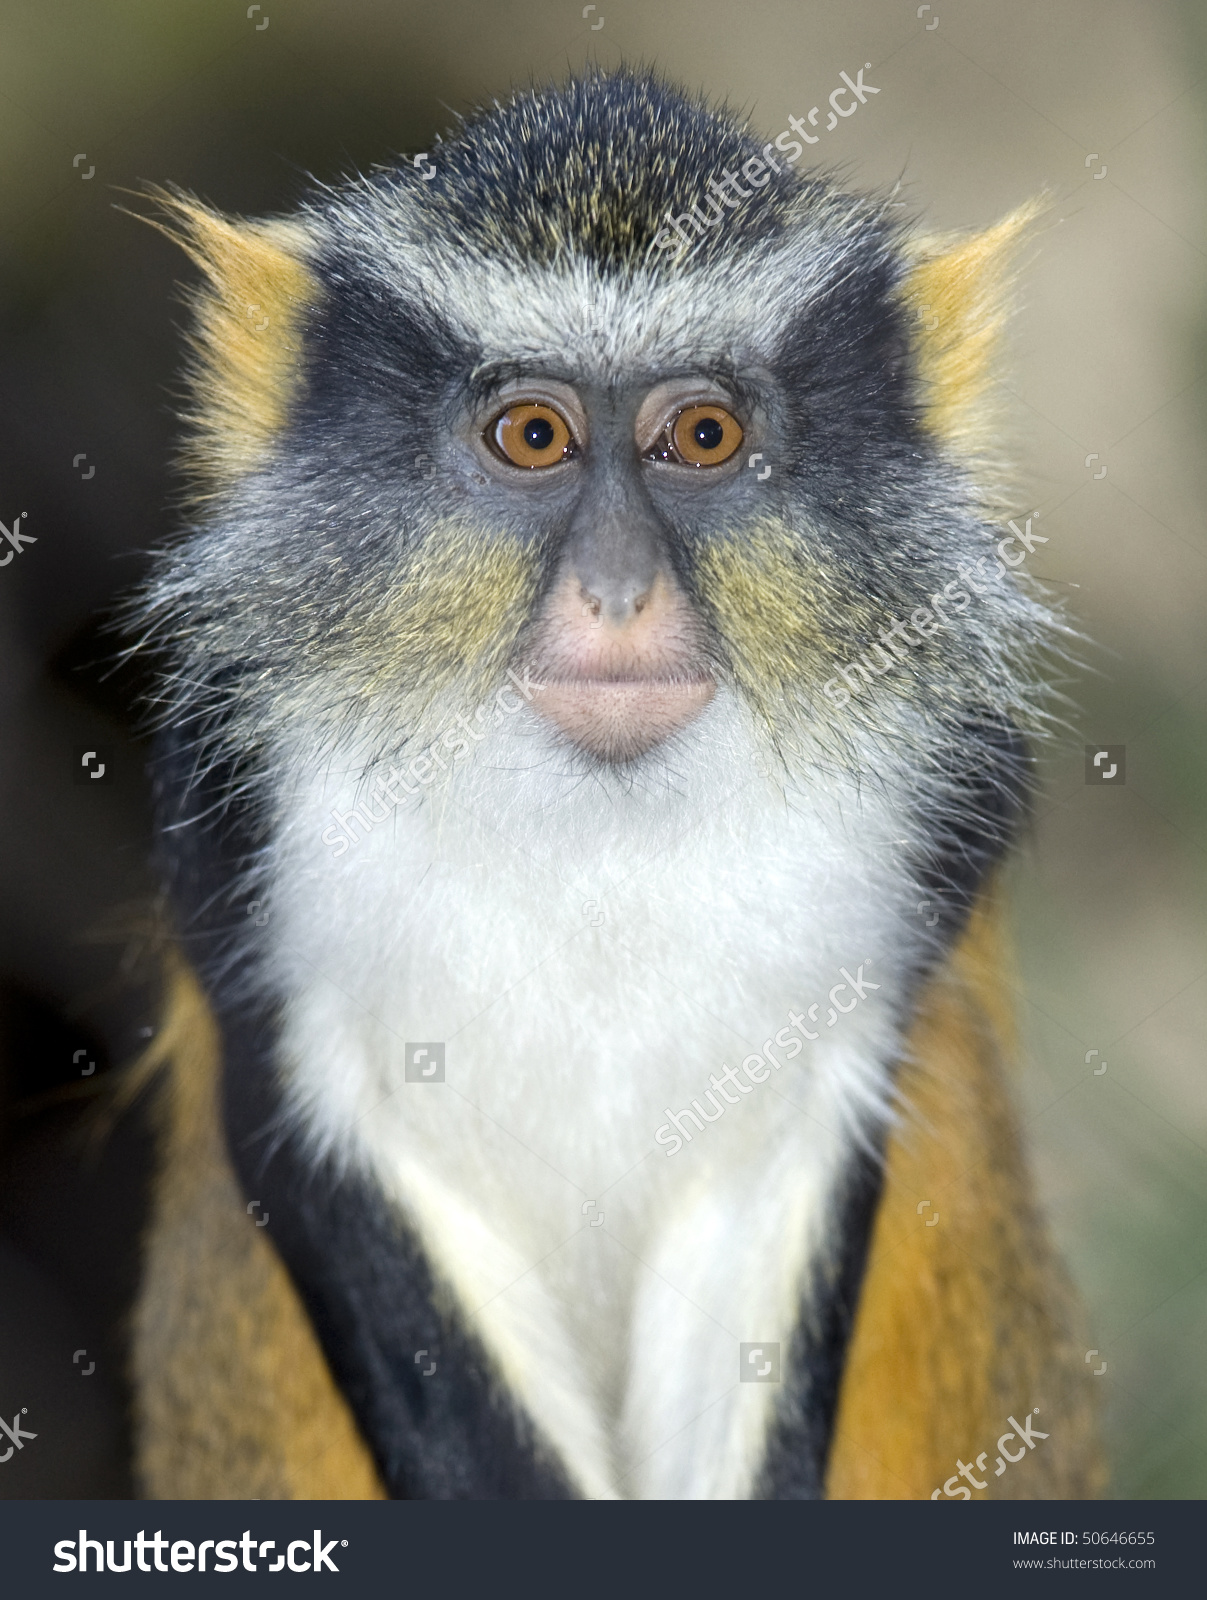 White-faced Guenon clipart #5, Download drawings